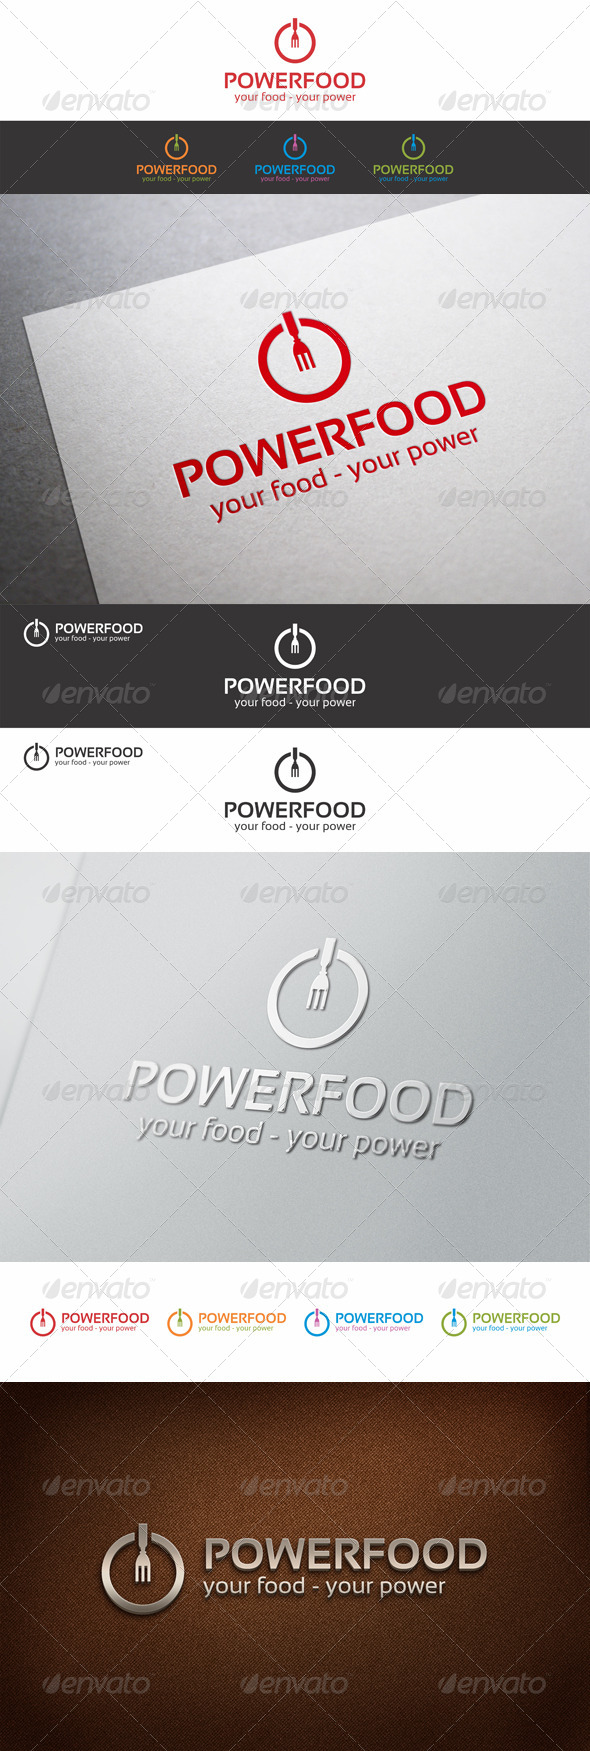 Power Food Logo Template_v2 - Food Logo Templates